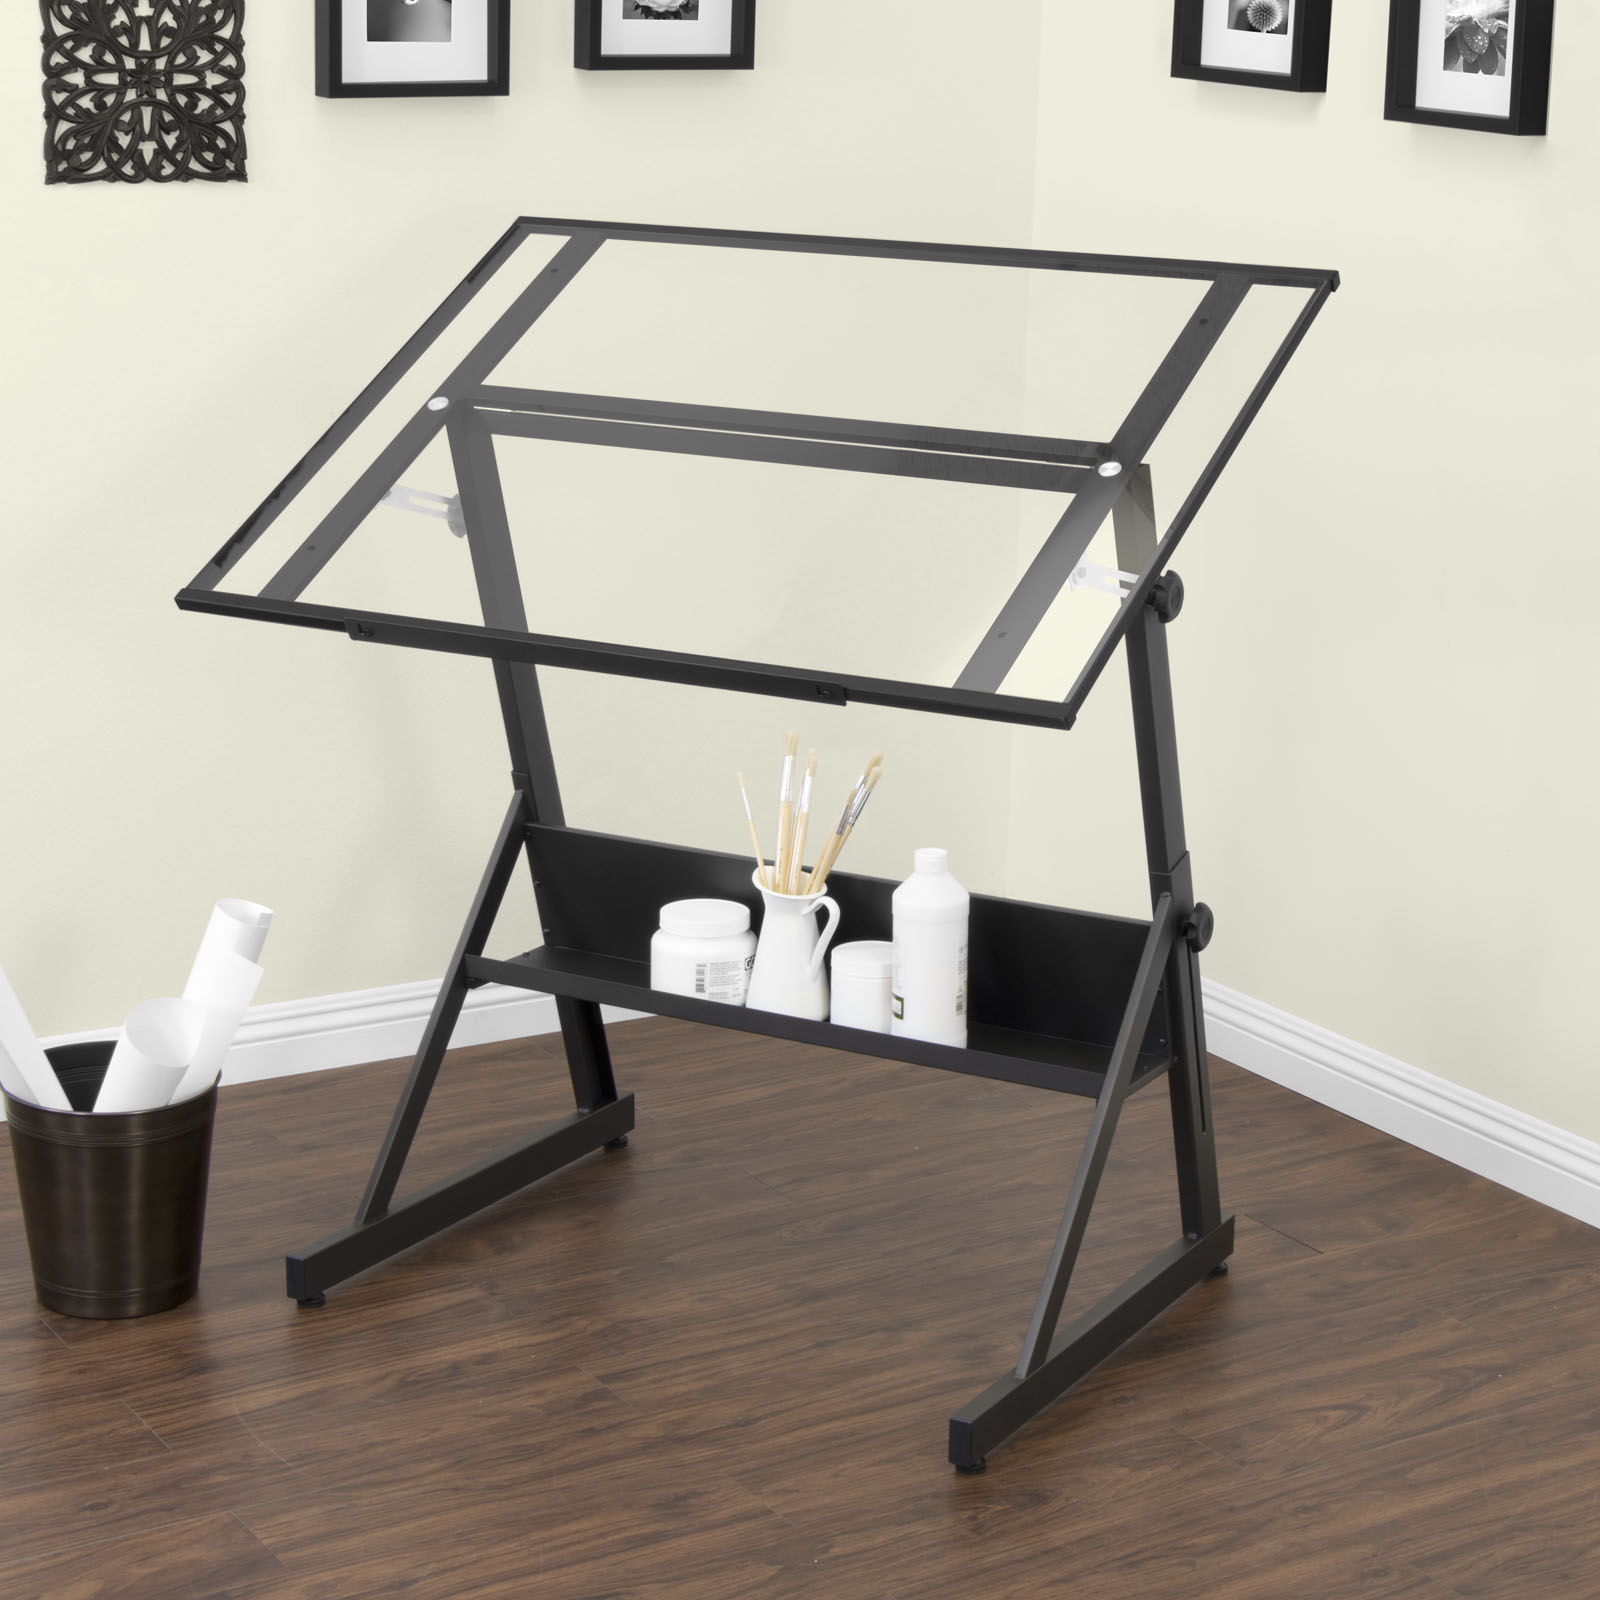 Adjustable Height Drafting Table Solano Height Adjustable Drafting Table Black Clear Glass Item